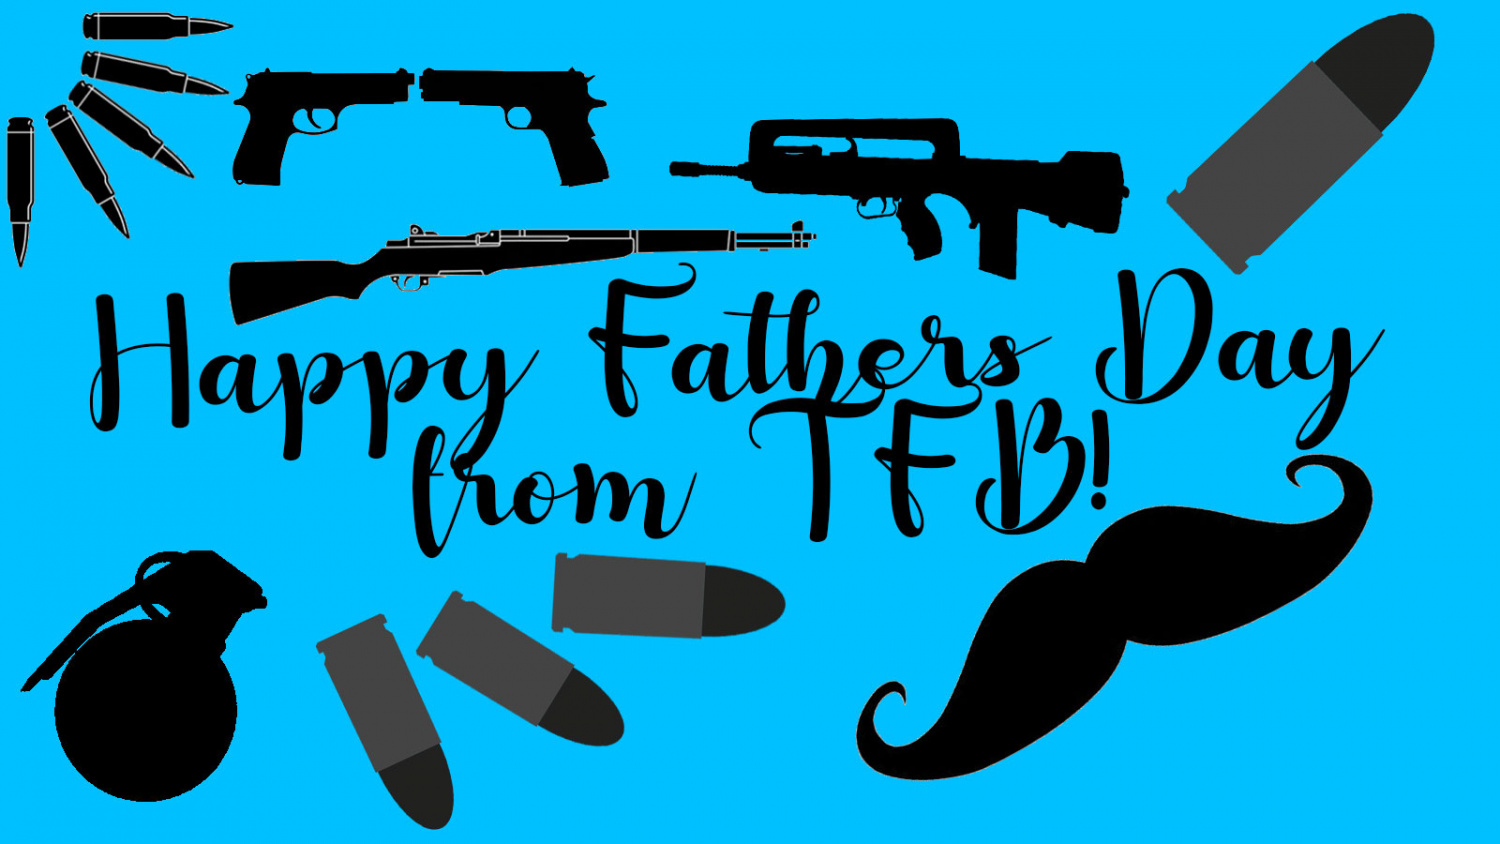 GET YOUR BRASS IN GEAR: Fantastic Father's Day Firearm Gifts